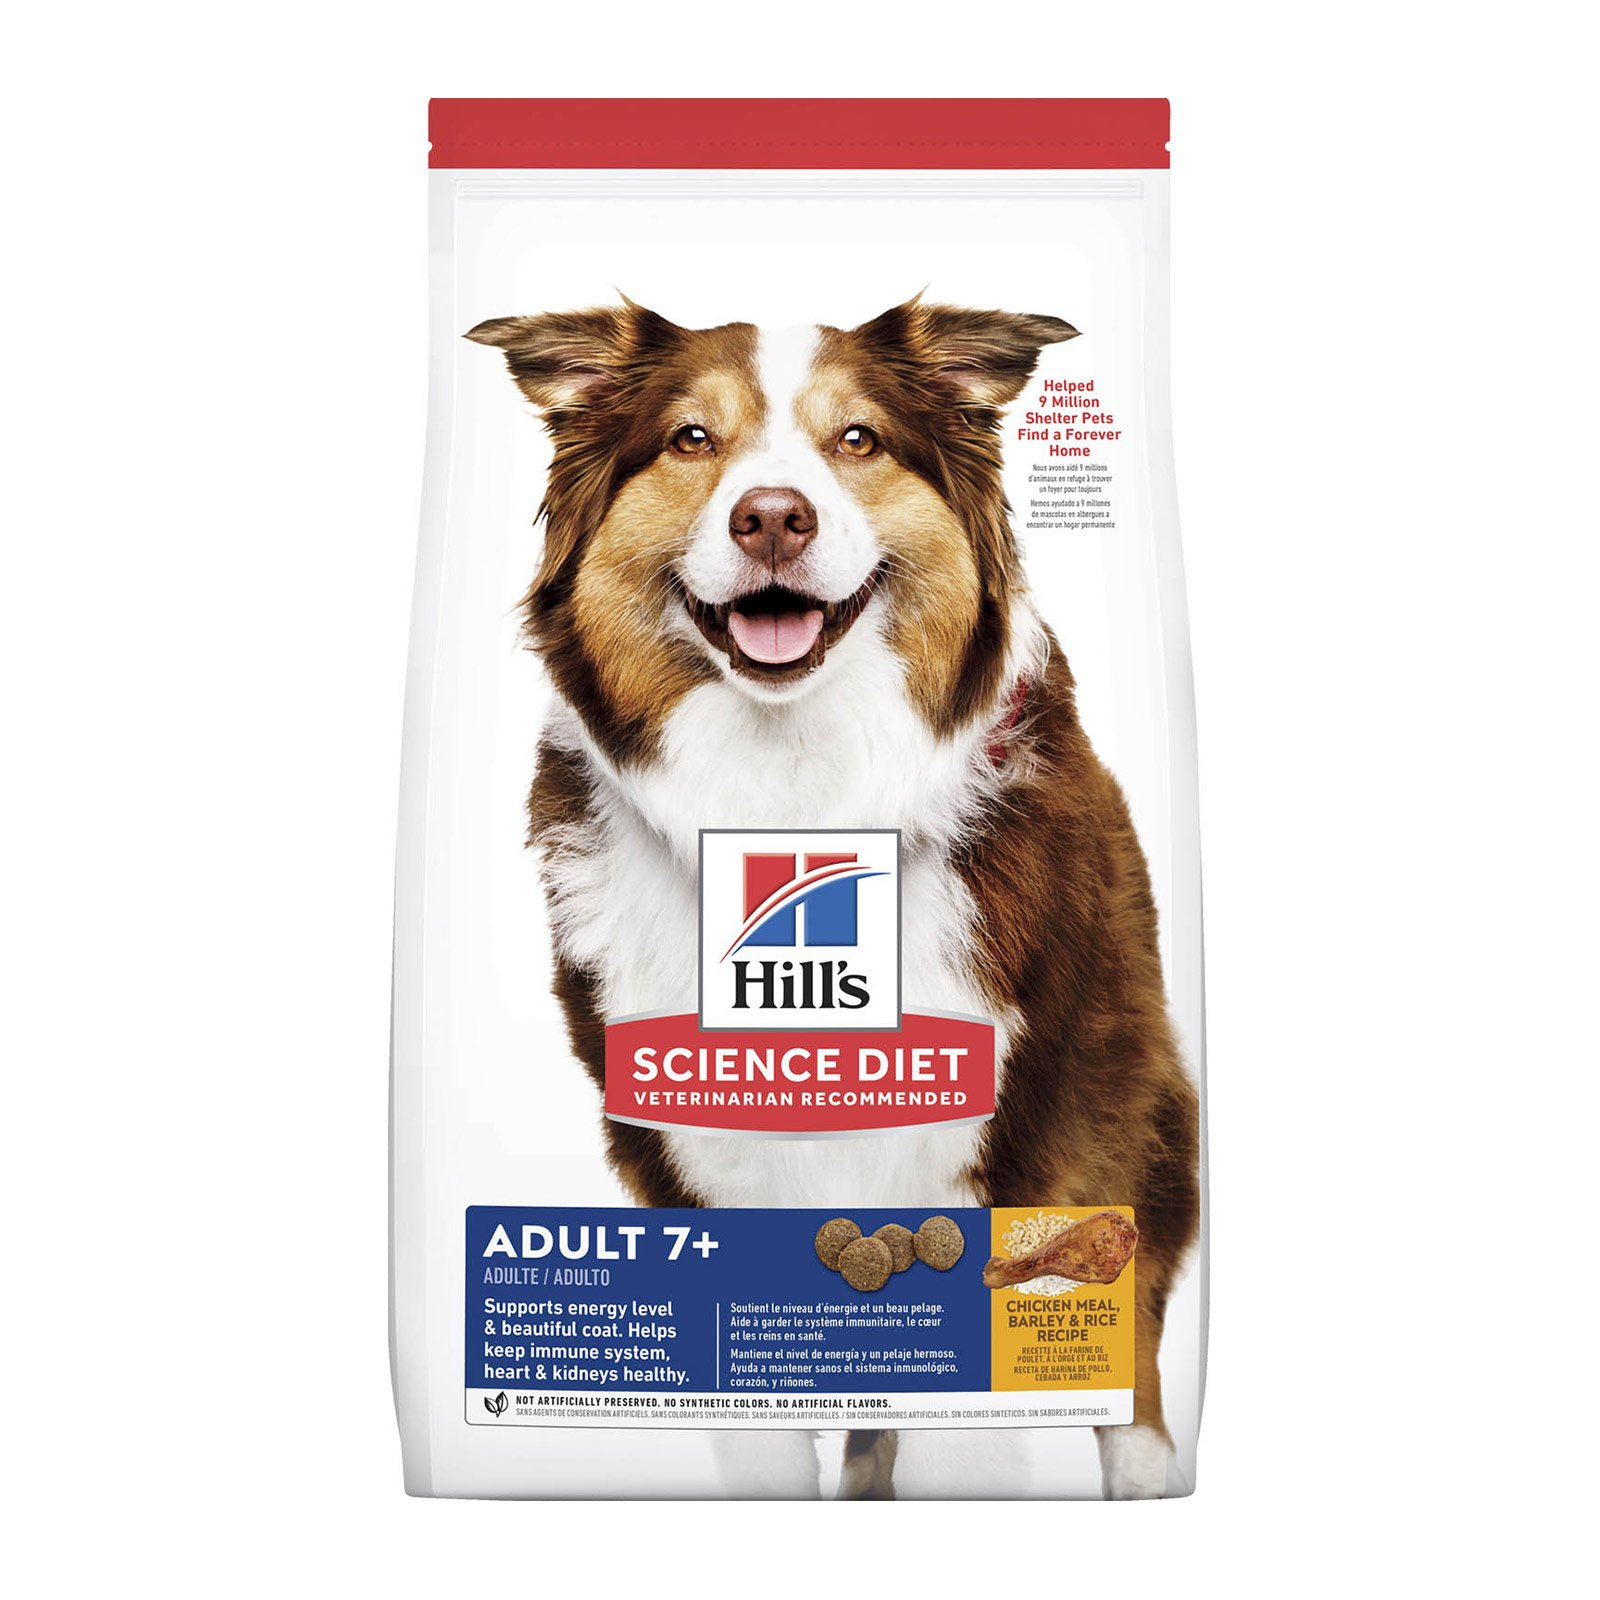 Hill's Science Diet Adult 7+ Chicken Meal, Barley & Brown Rice Dry Dog Food